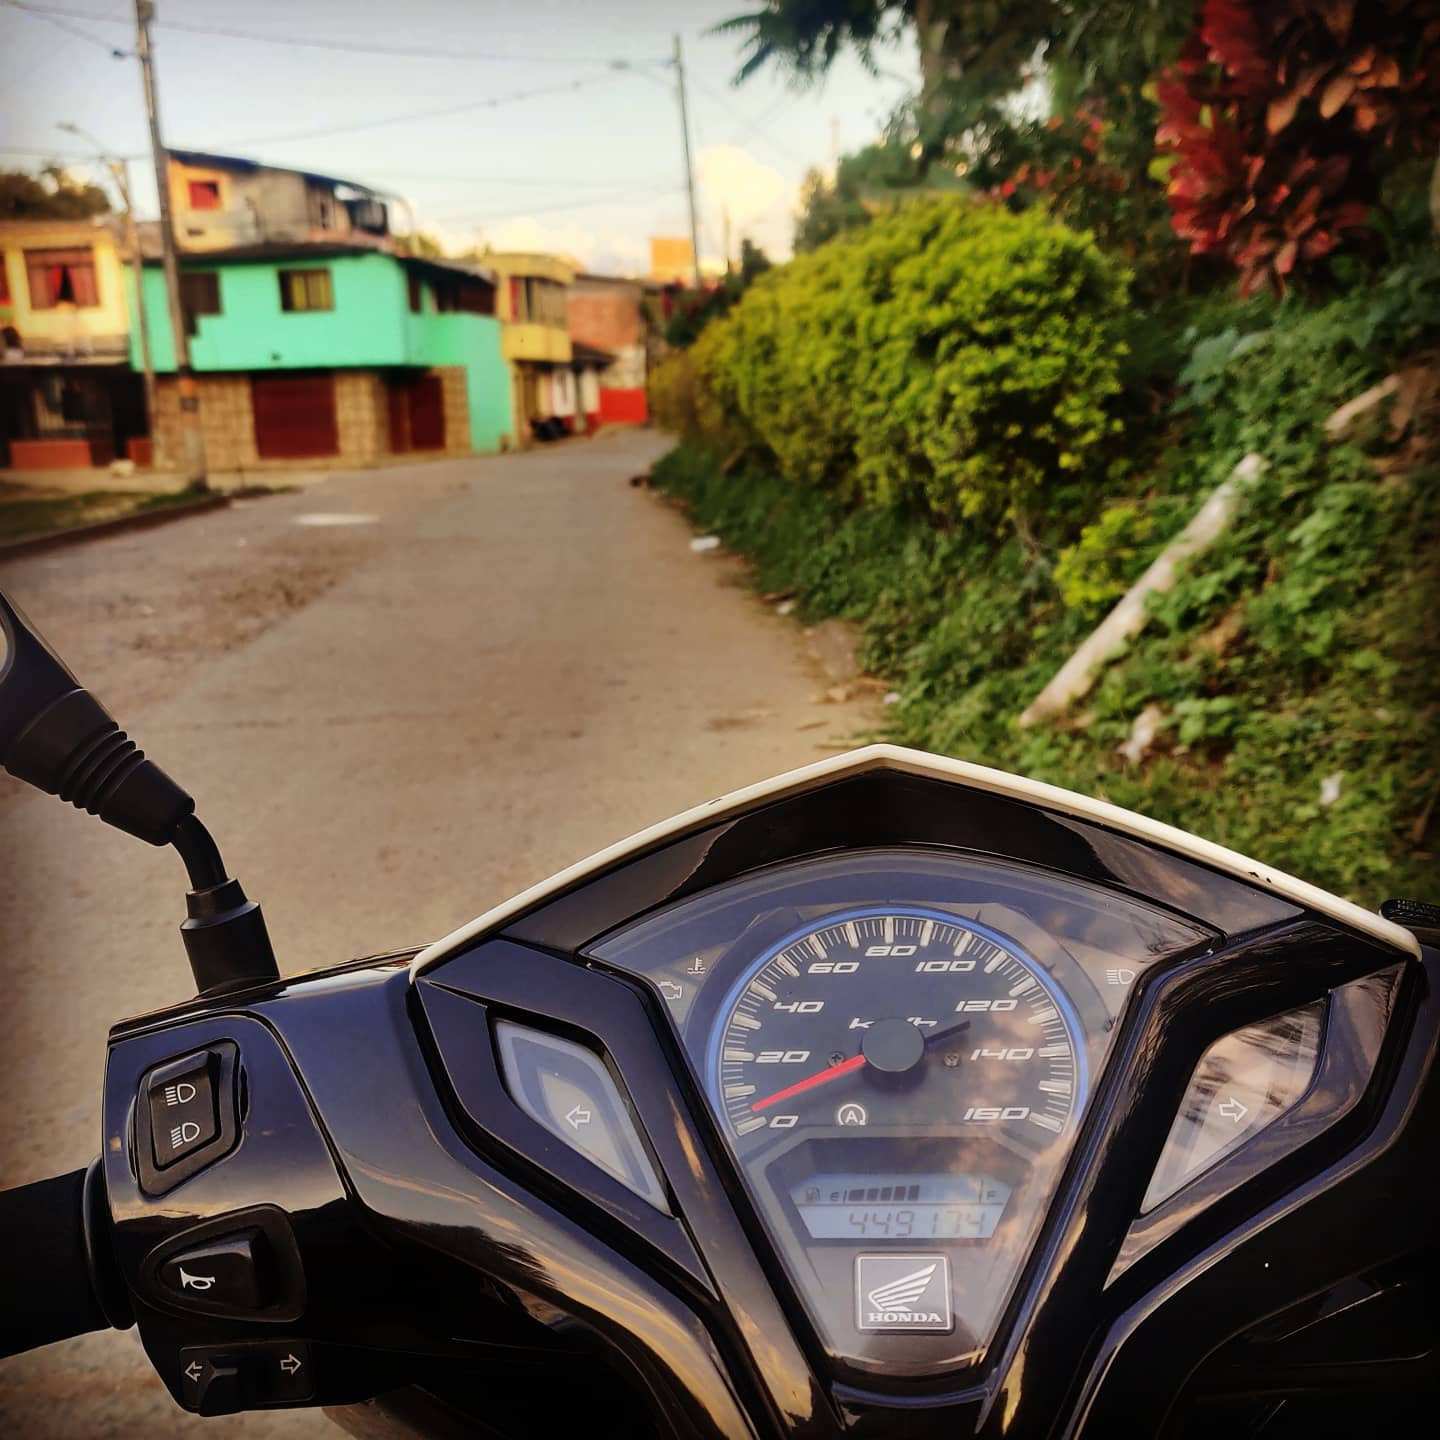 #Vamos 🛵🛵🛵 Exploring #themanor... Getting the adventure on... #outthecomfortzone rolling with the situation #motos #moto #quindio #realities  #Bohemia gives you a different set of cards...  #Breathe ...  #relax and take in the #education #gratitude   🇨🇴🇨🇴🇨🇴 Today #Colombiacalling #Peace #love & #adventures from #Colombia #travel #wanderlust #globetrotting #globetrekker #digitalnomad #digitalnomadlife #digitalnomads #nomadicfirstandforemost #creatingmemories #belikeabutterfly   #NewPerspective #PlantingSeeds #Quarantined